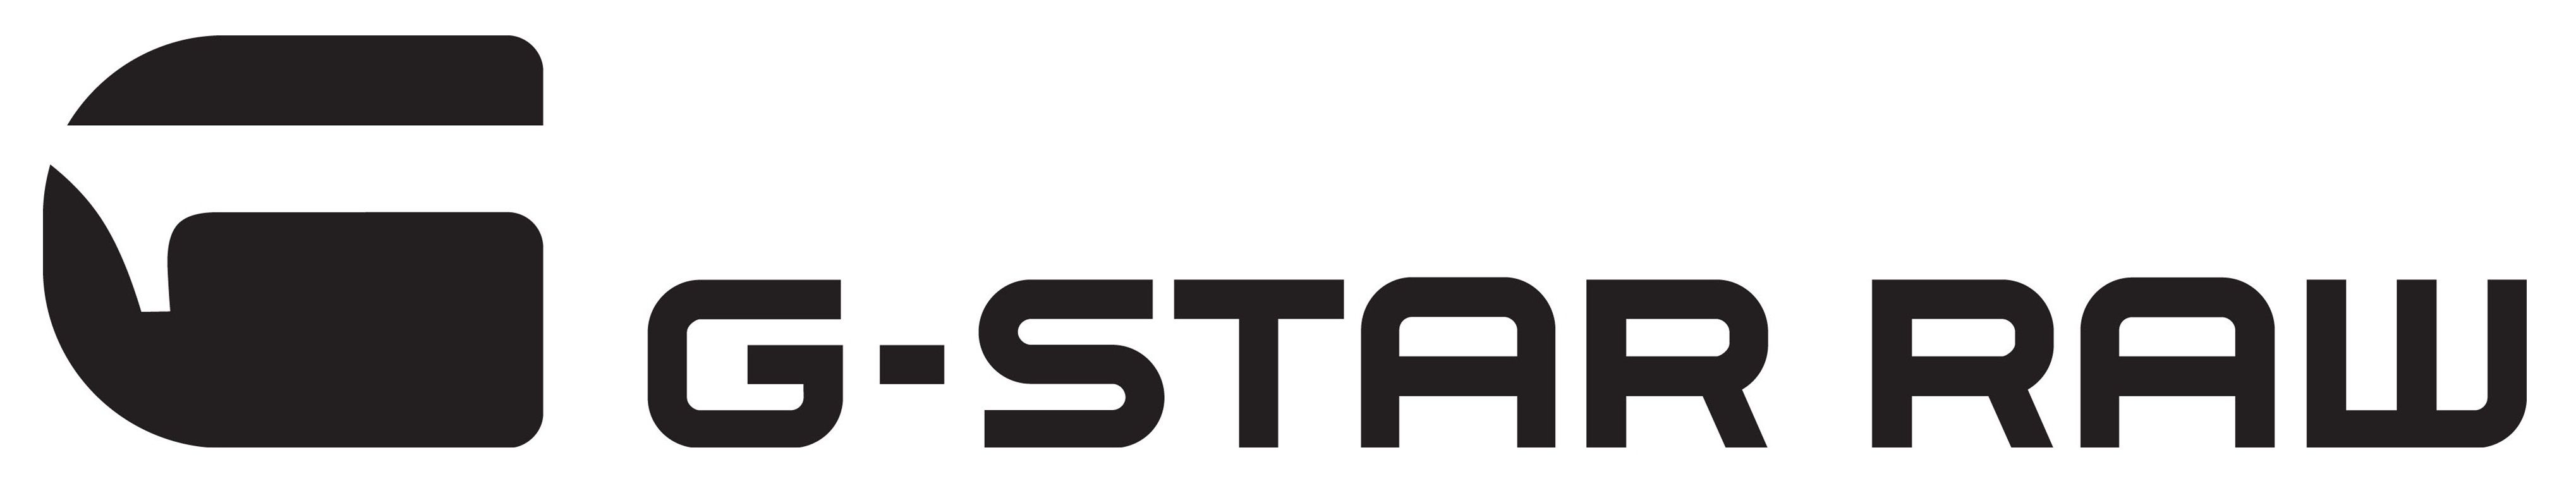 list of synonyms and antonyms of the word g star logo